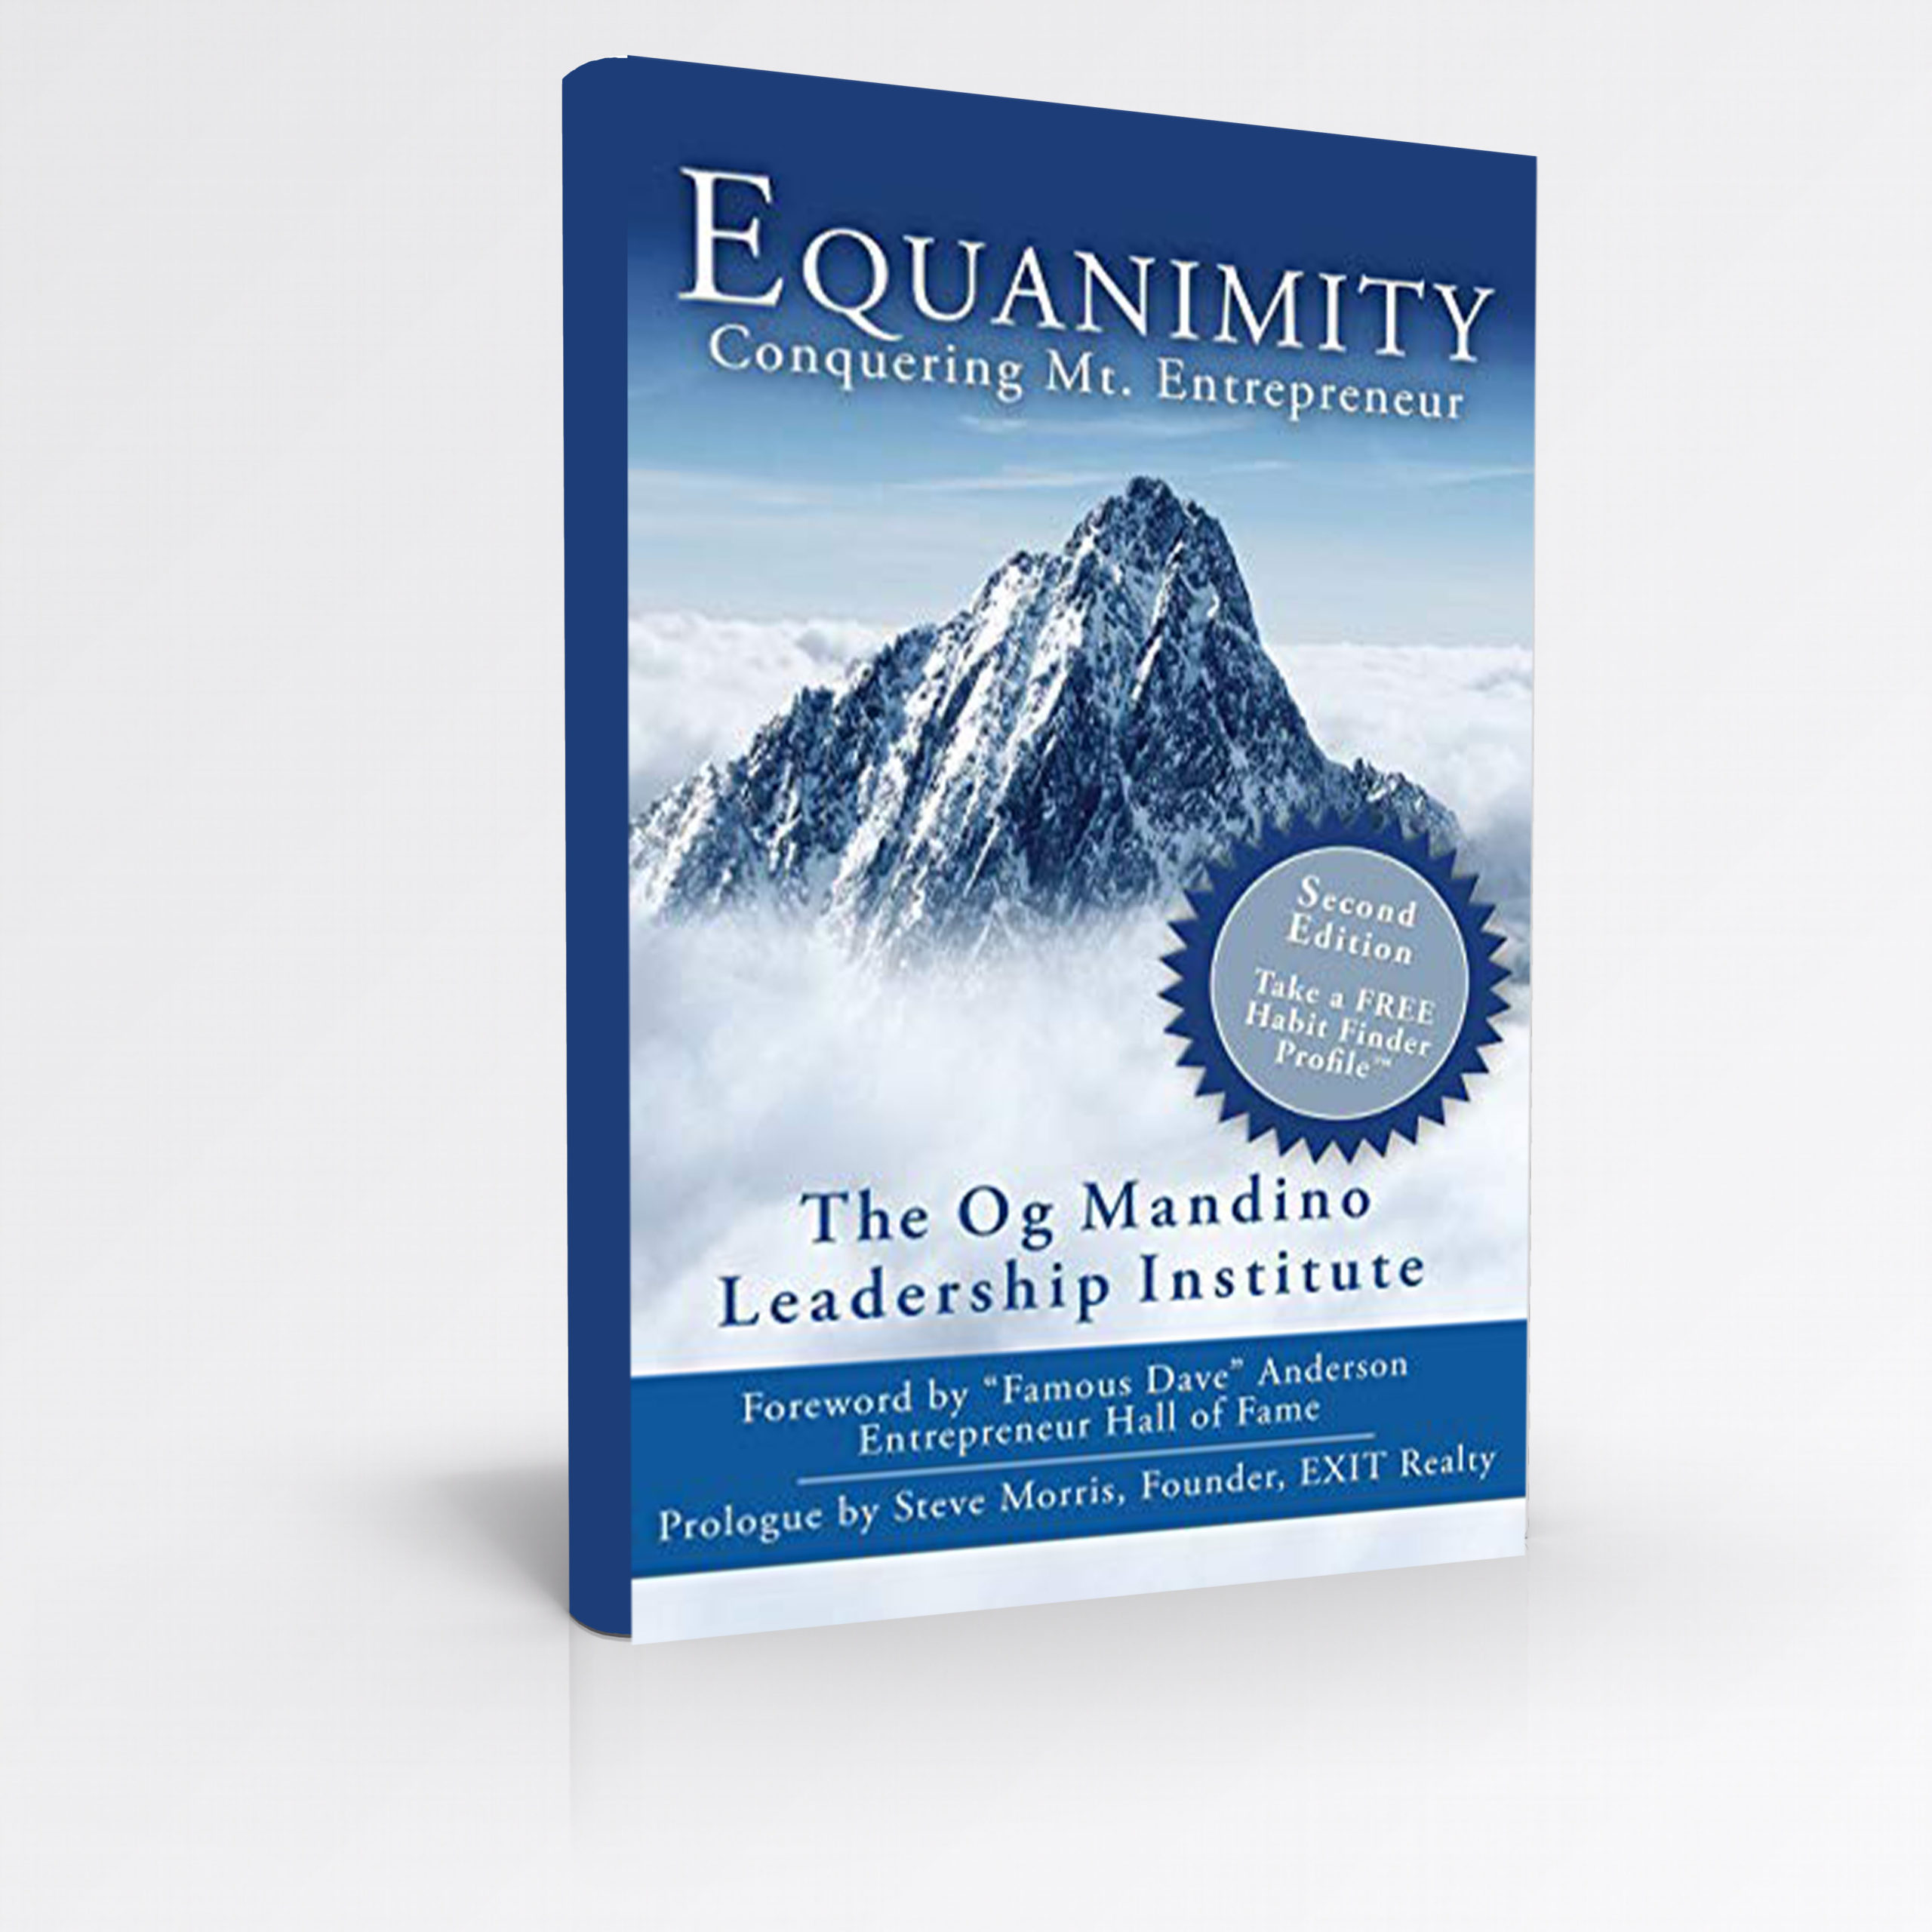 Equanimity - Book